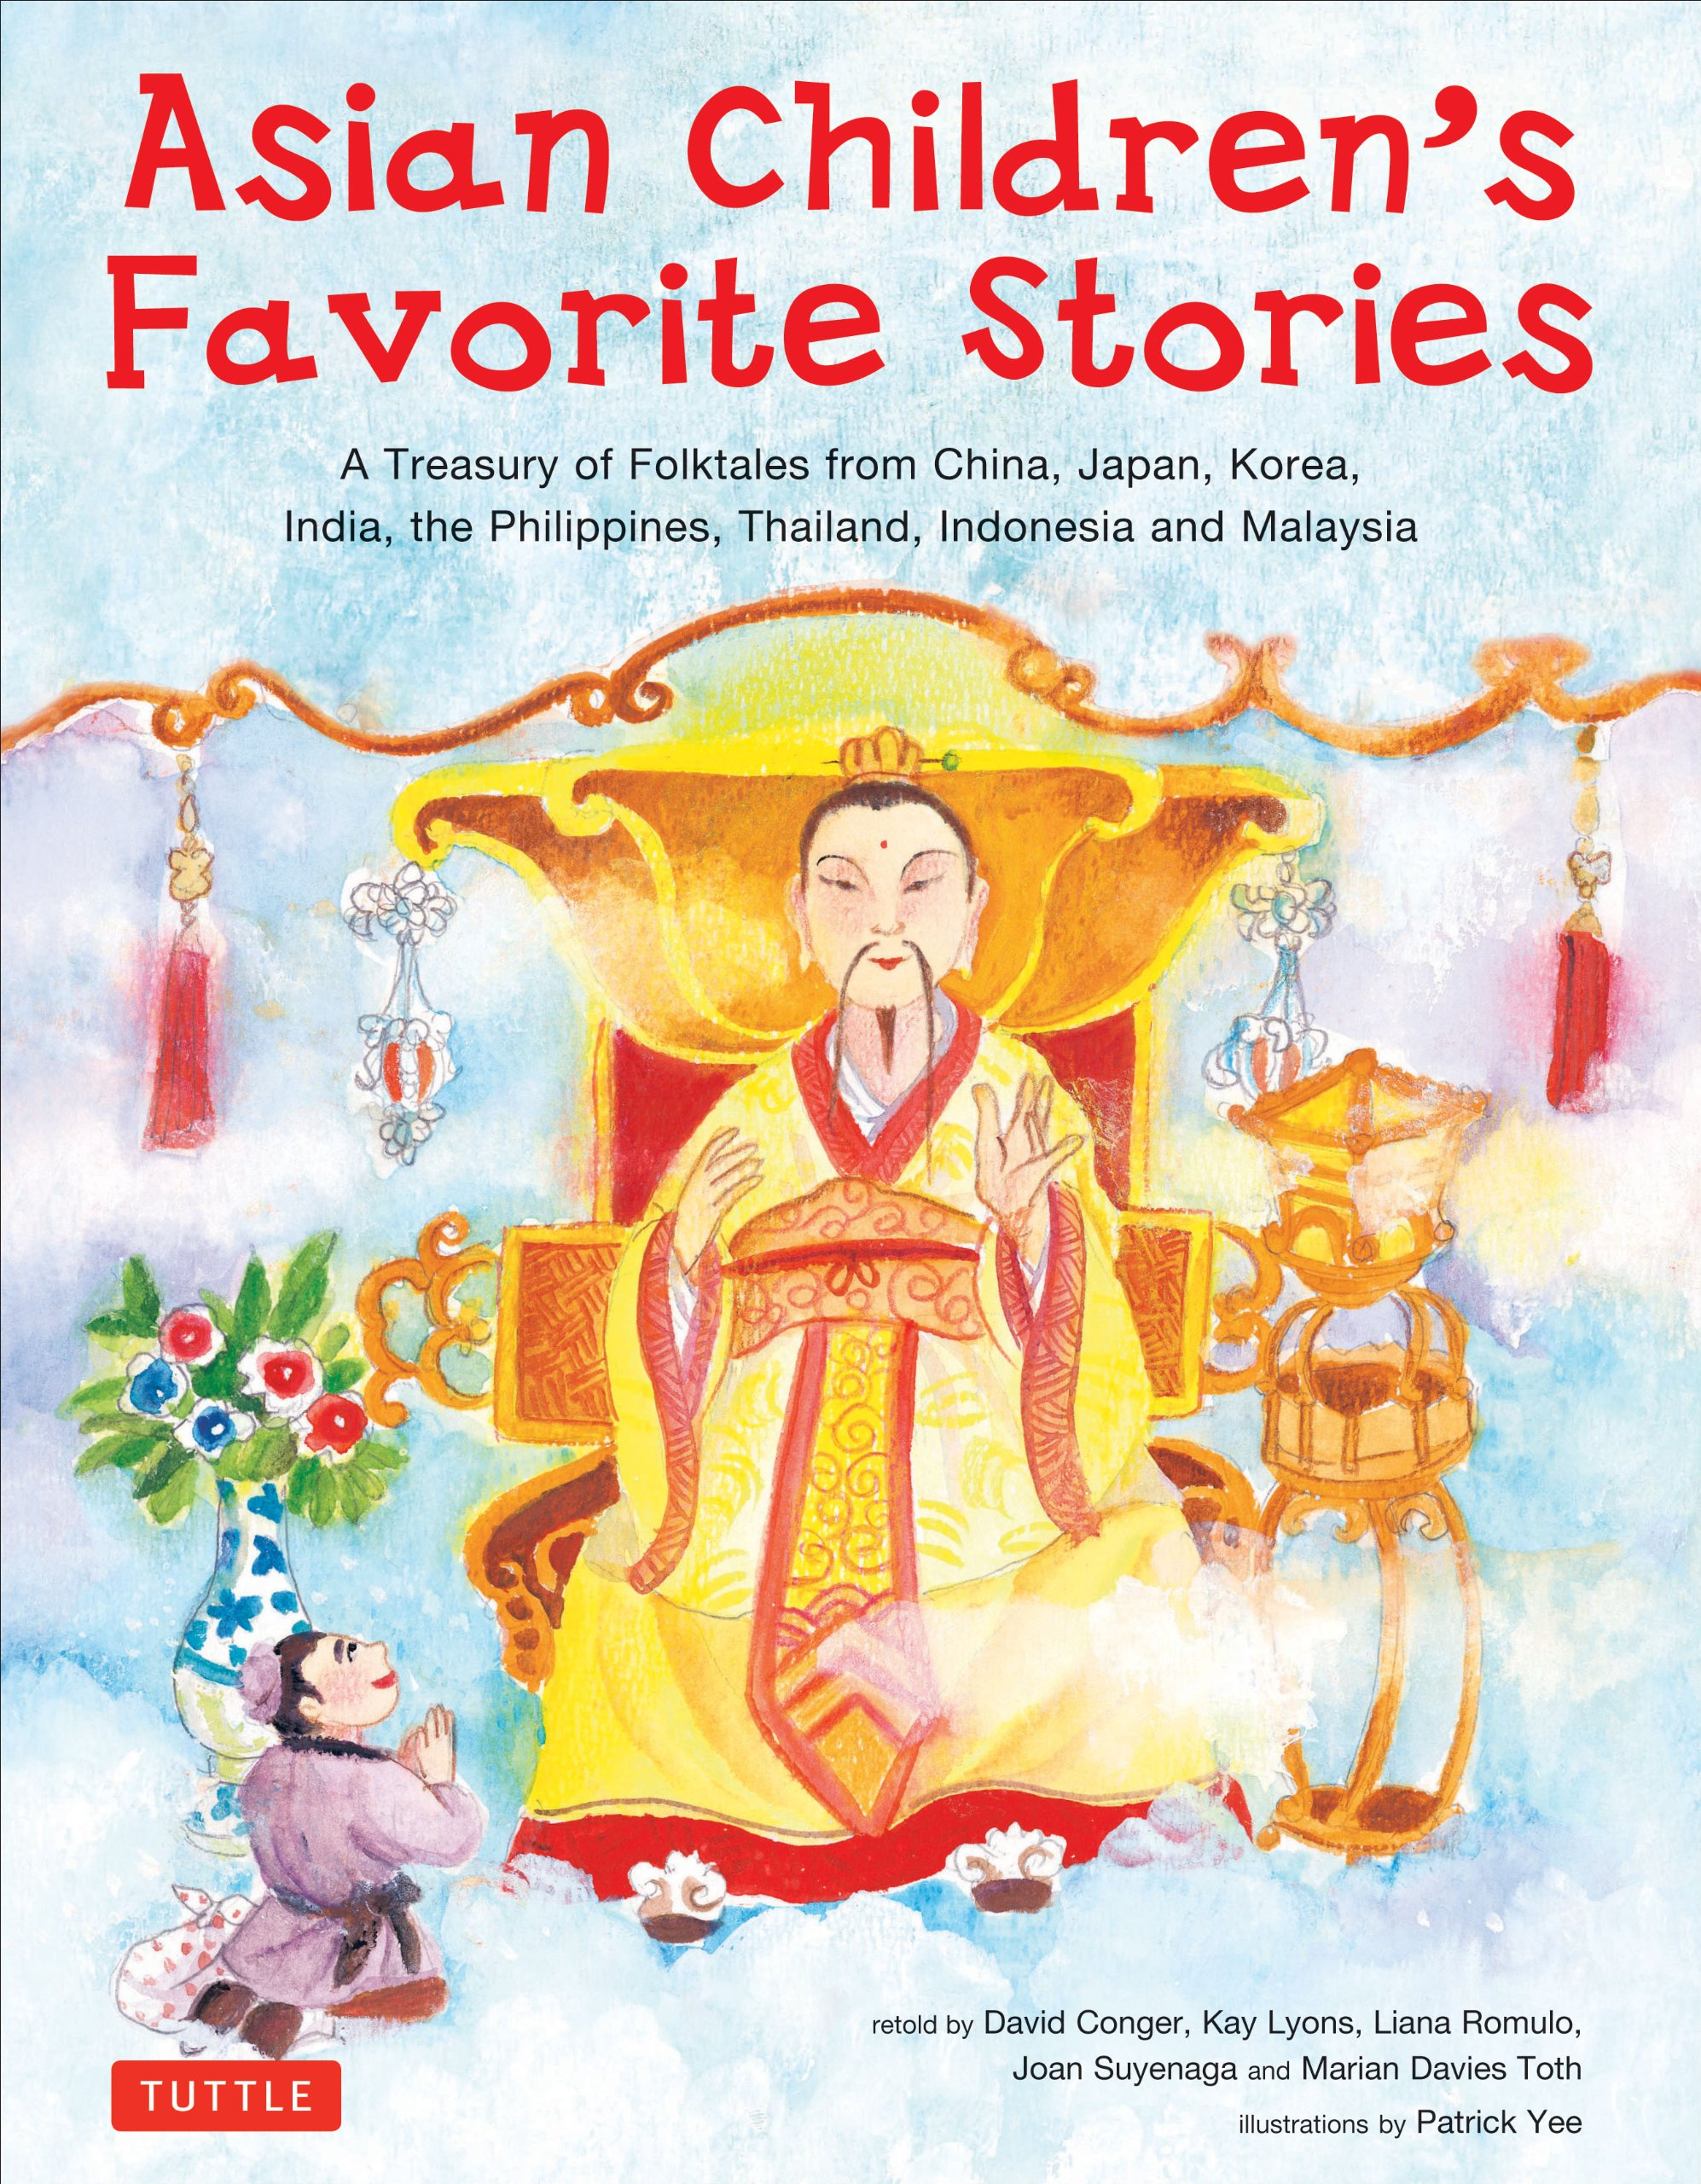 Download Asian Children's Favorite Stories: A Treasury of Folktales from China, Japan, Korea, India, the Philippines, Thailand, Indonesia and Malaysia ebook